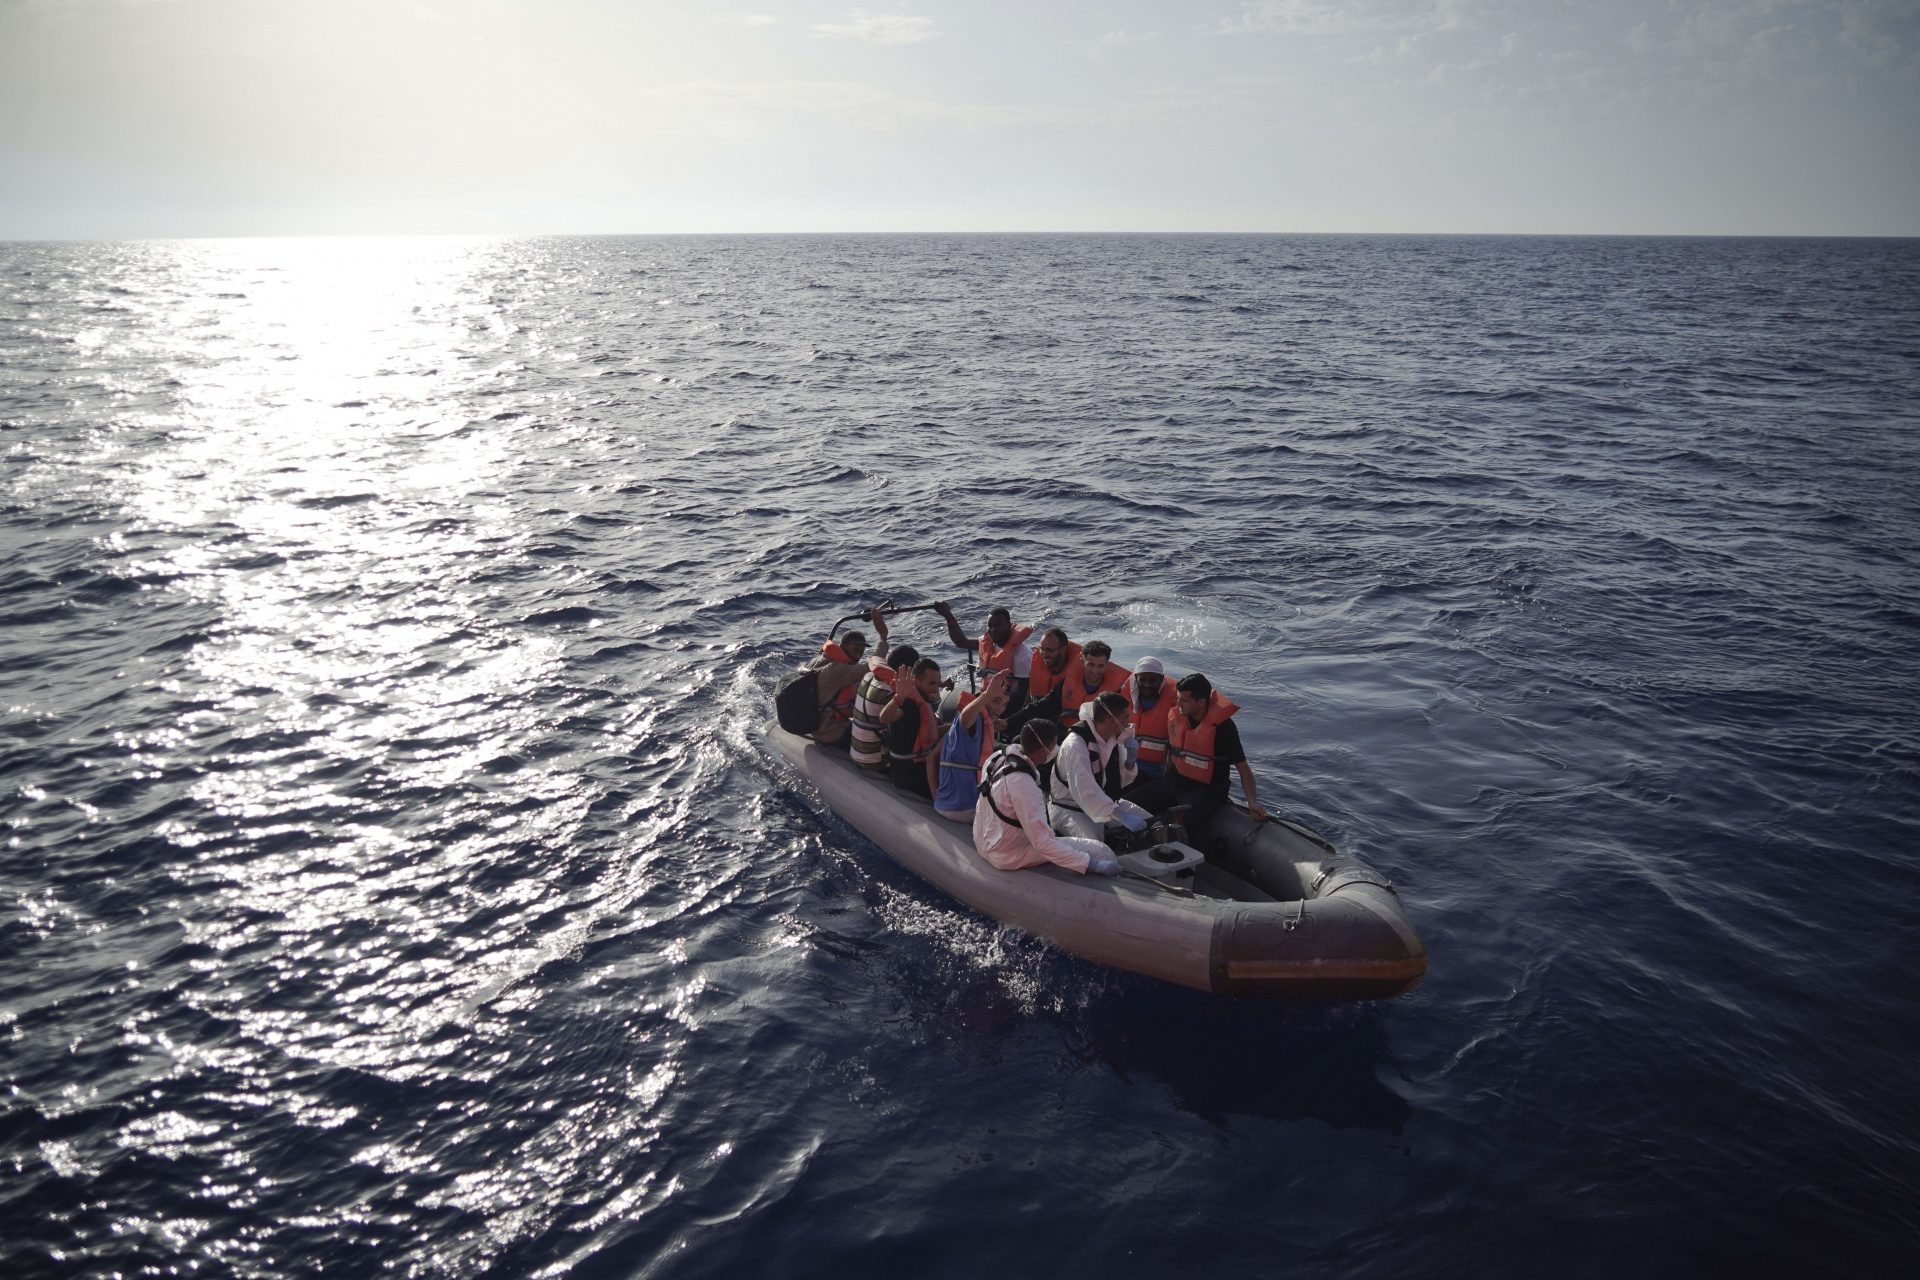 Members of the Maltese Armed Forces take a group of migrants to a Maltese military ship in the Mediterranean Sea